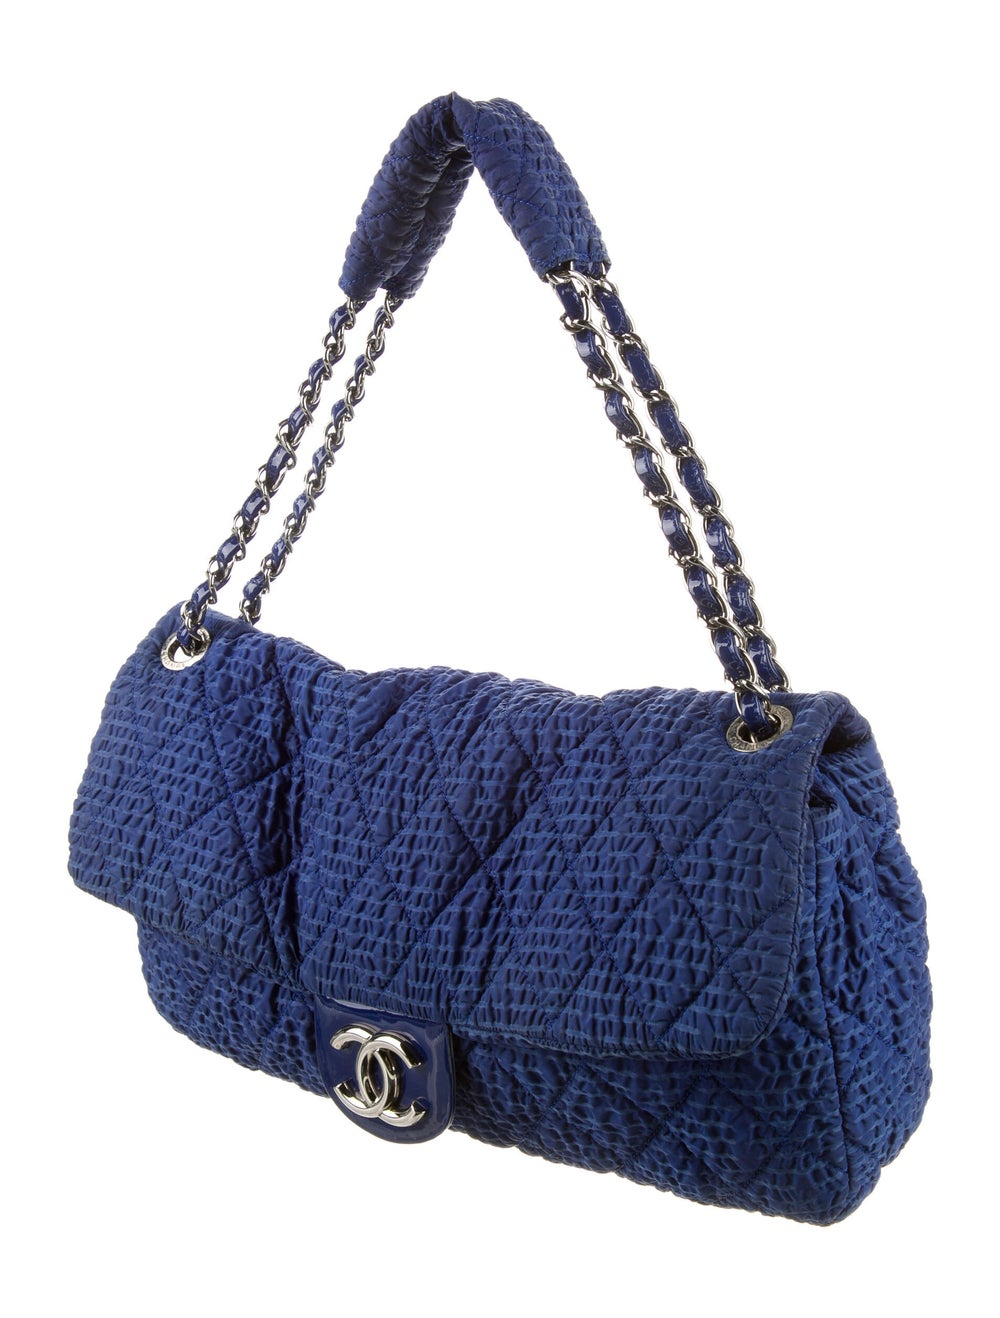 Chanel Cloquee Flap Bag Blue - image 3